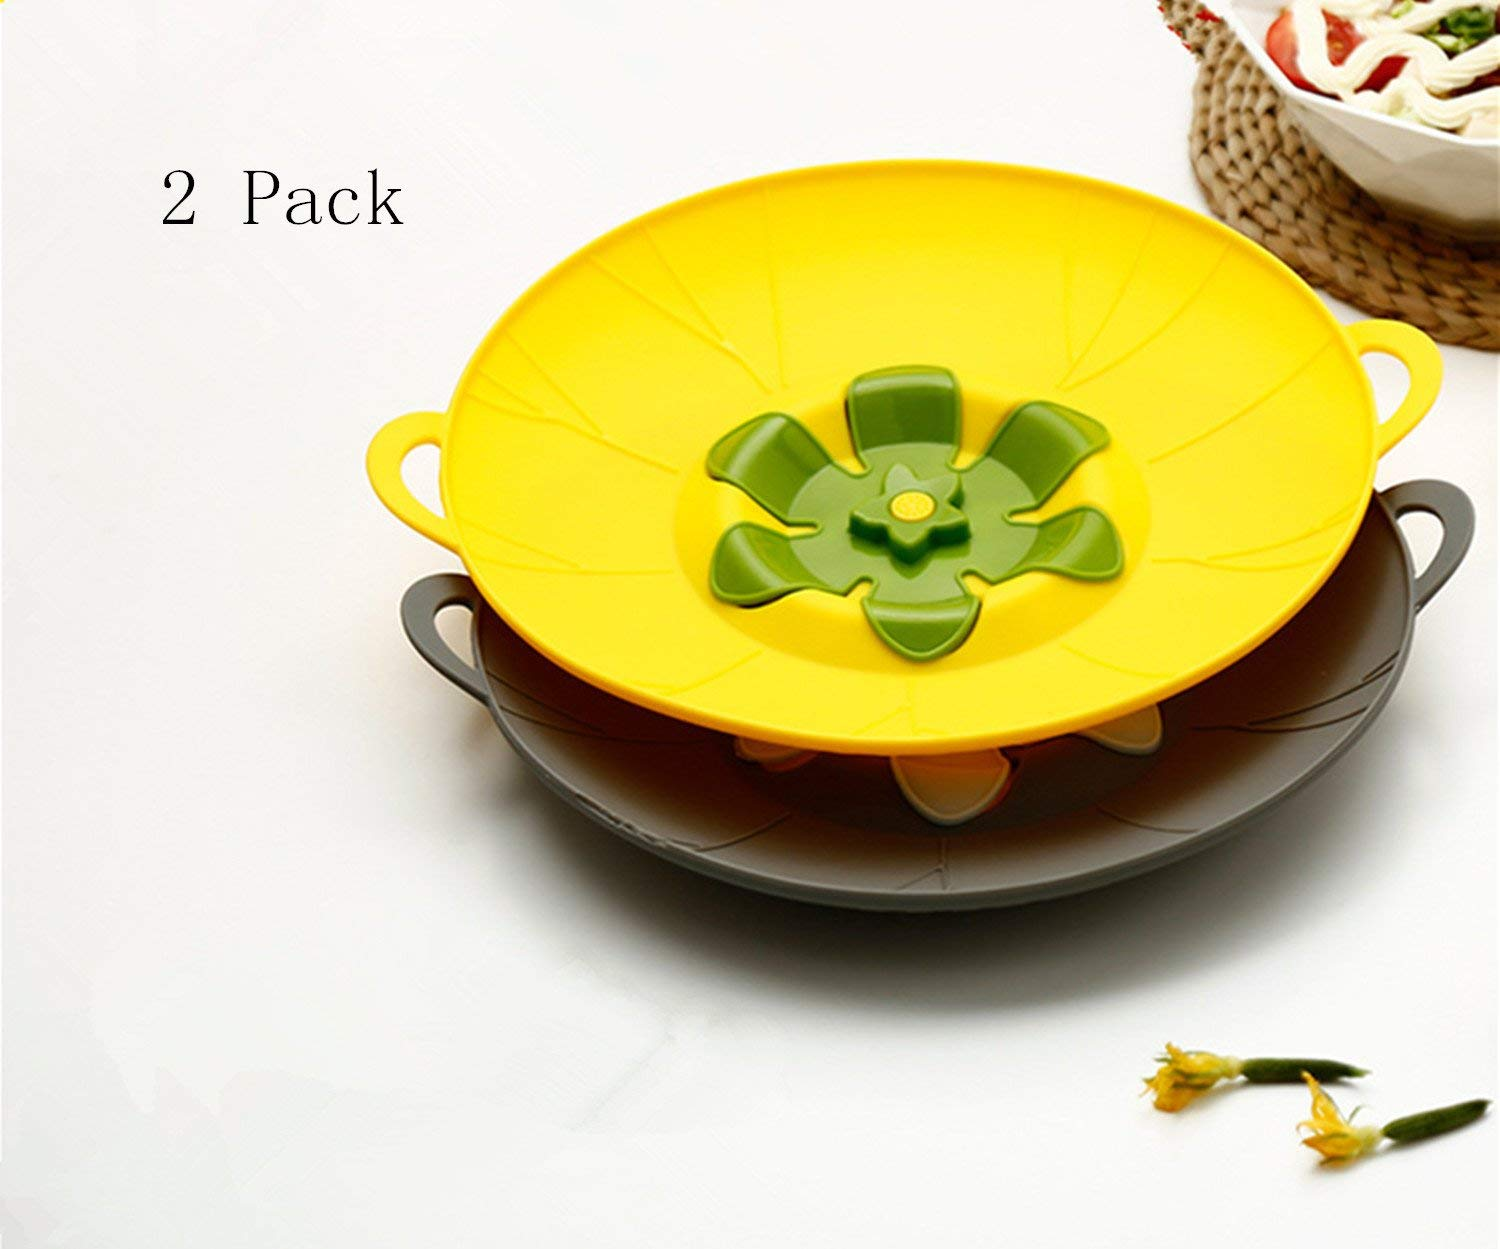 Case of 50,Spill Stopper Lid Cover, Boil Over and Splatter Safeguard, Silicone Pot Pan Lid, Multifunctional Kitchen Tool, Pack of 2 (Yellow & Gray)